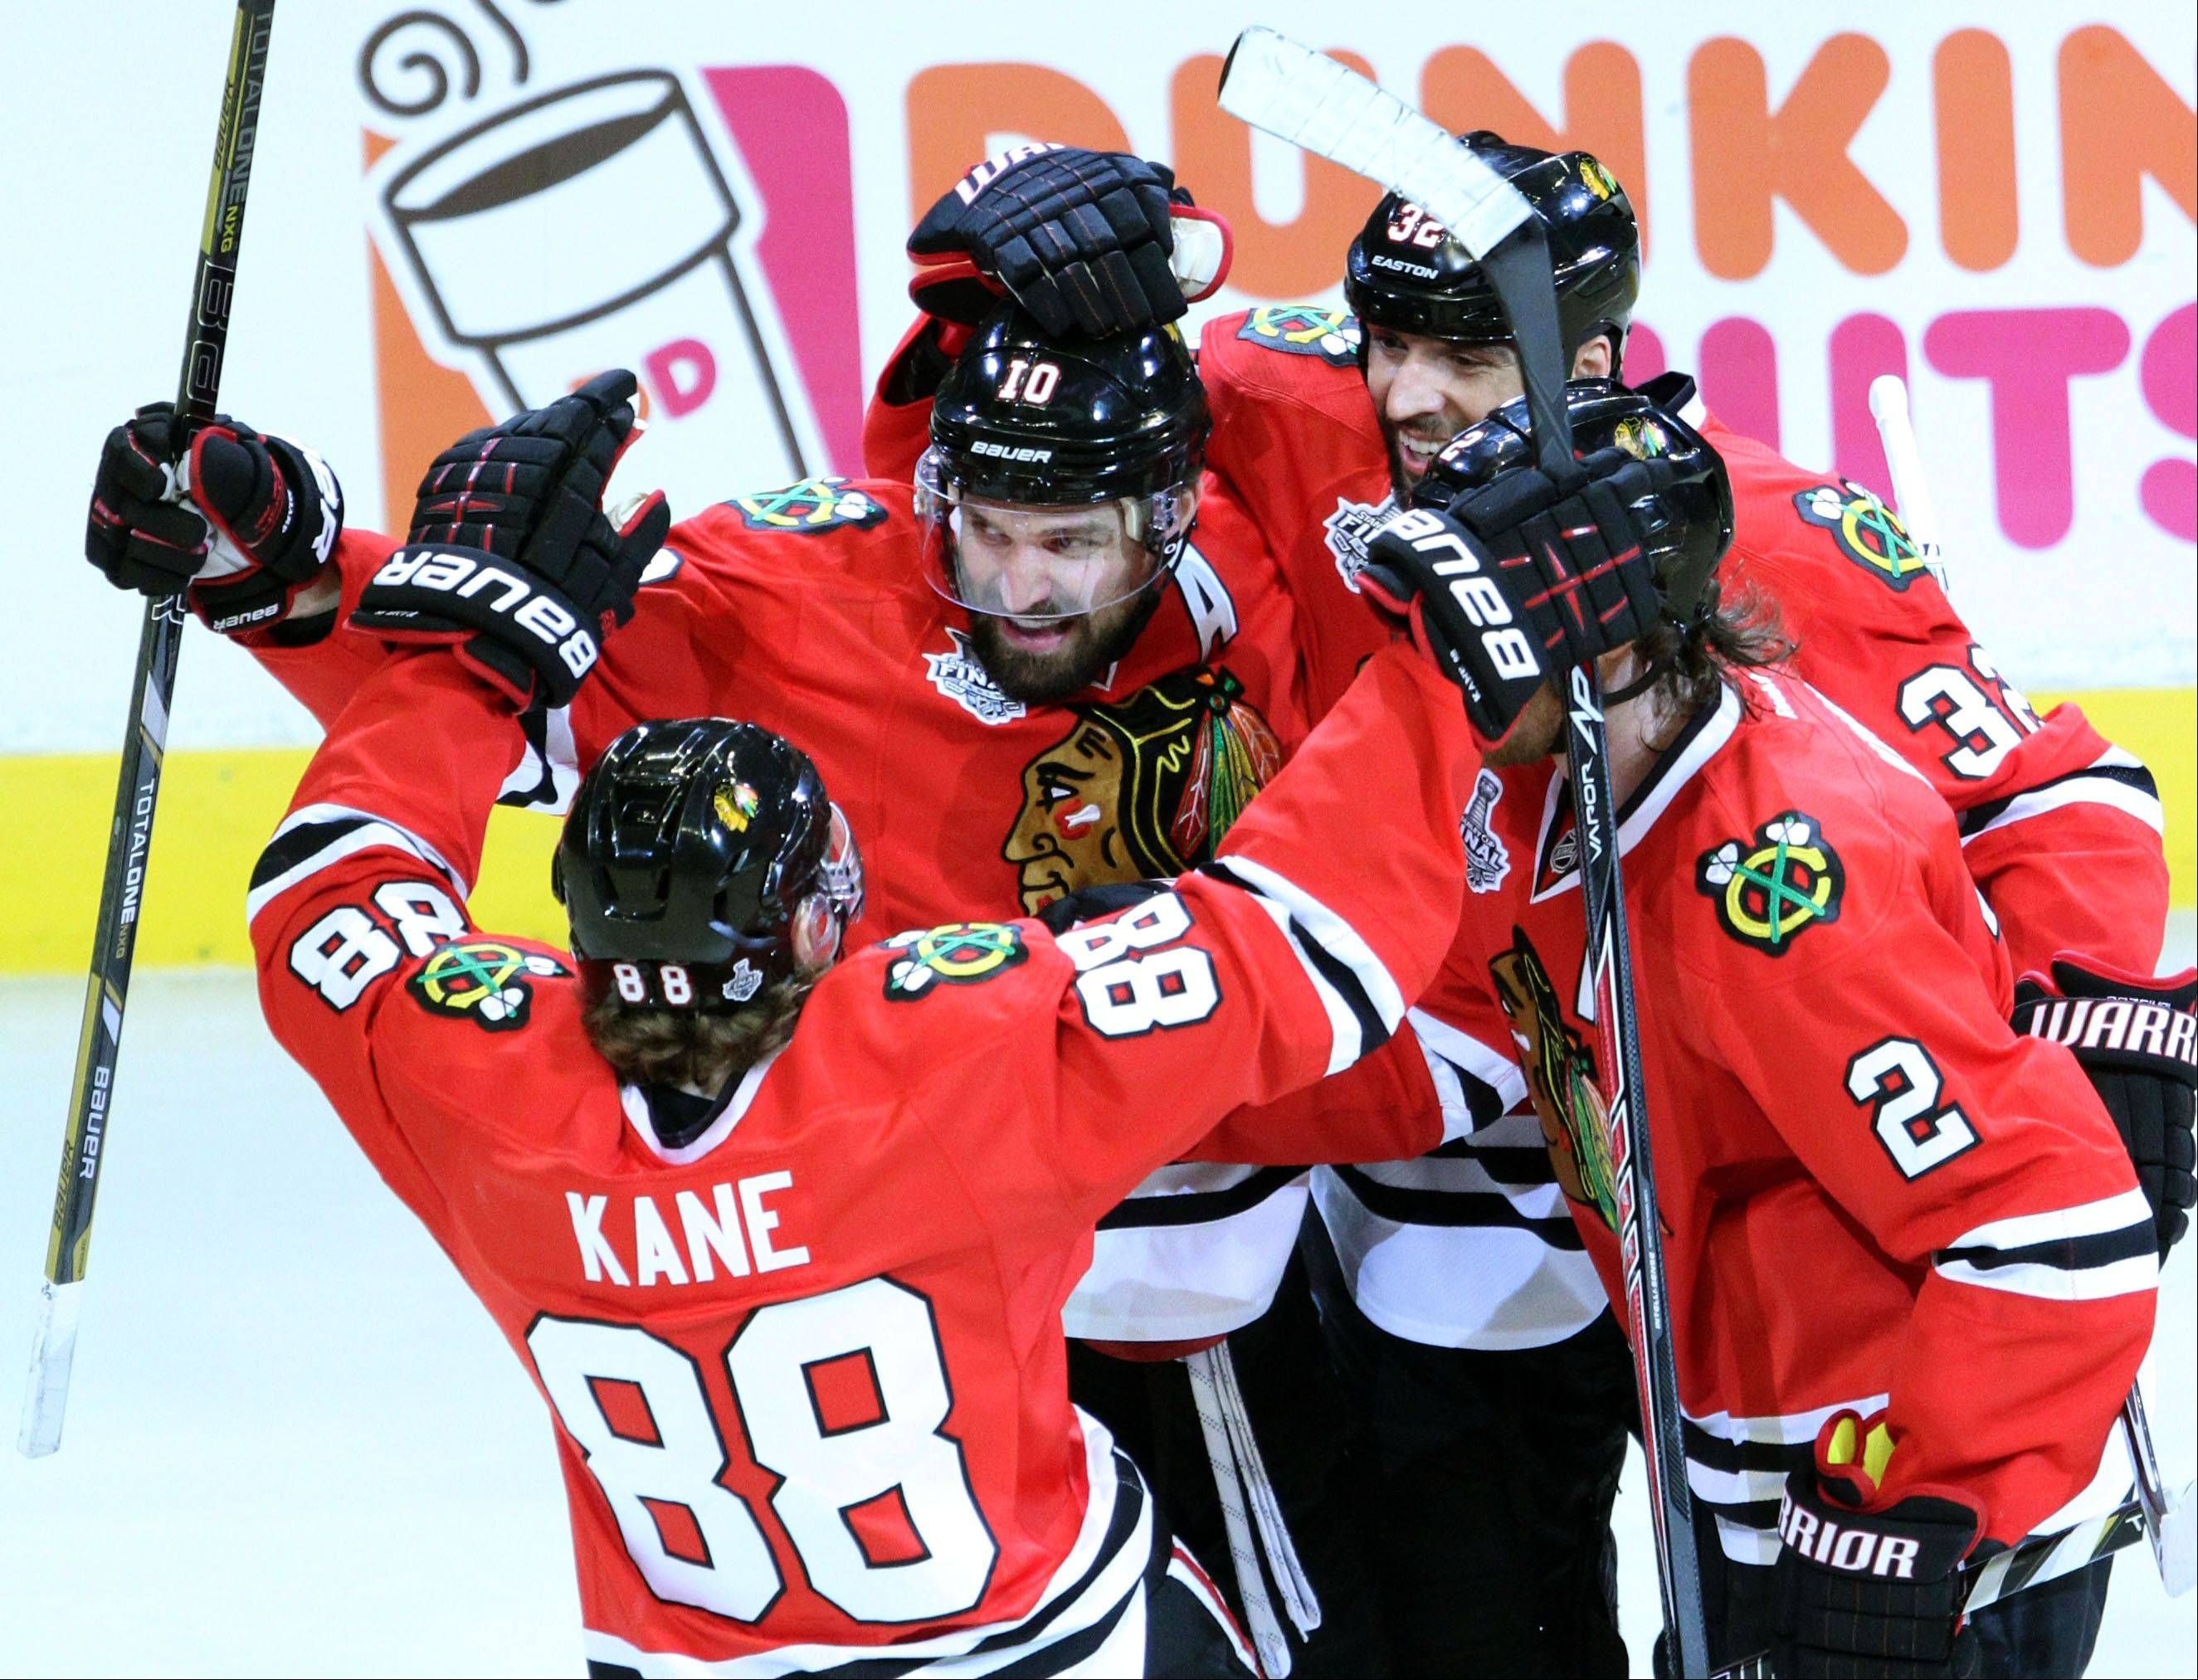 Patrick Sharp celebrates with teammates after scoring in the first period during game 2 of the Stanley Cup Finals against the Boston Bruins at the United Center in Chicago Saturday.